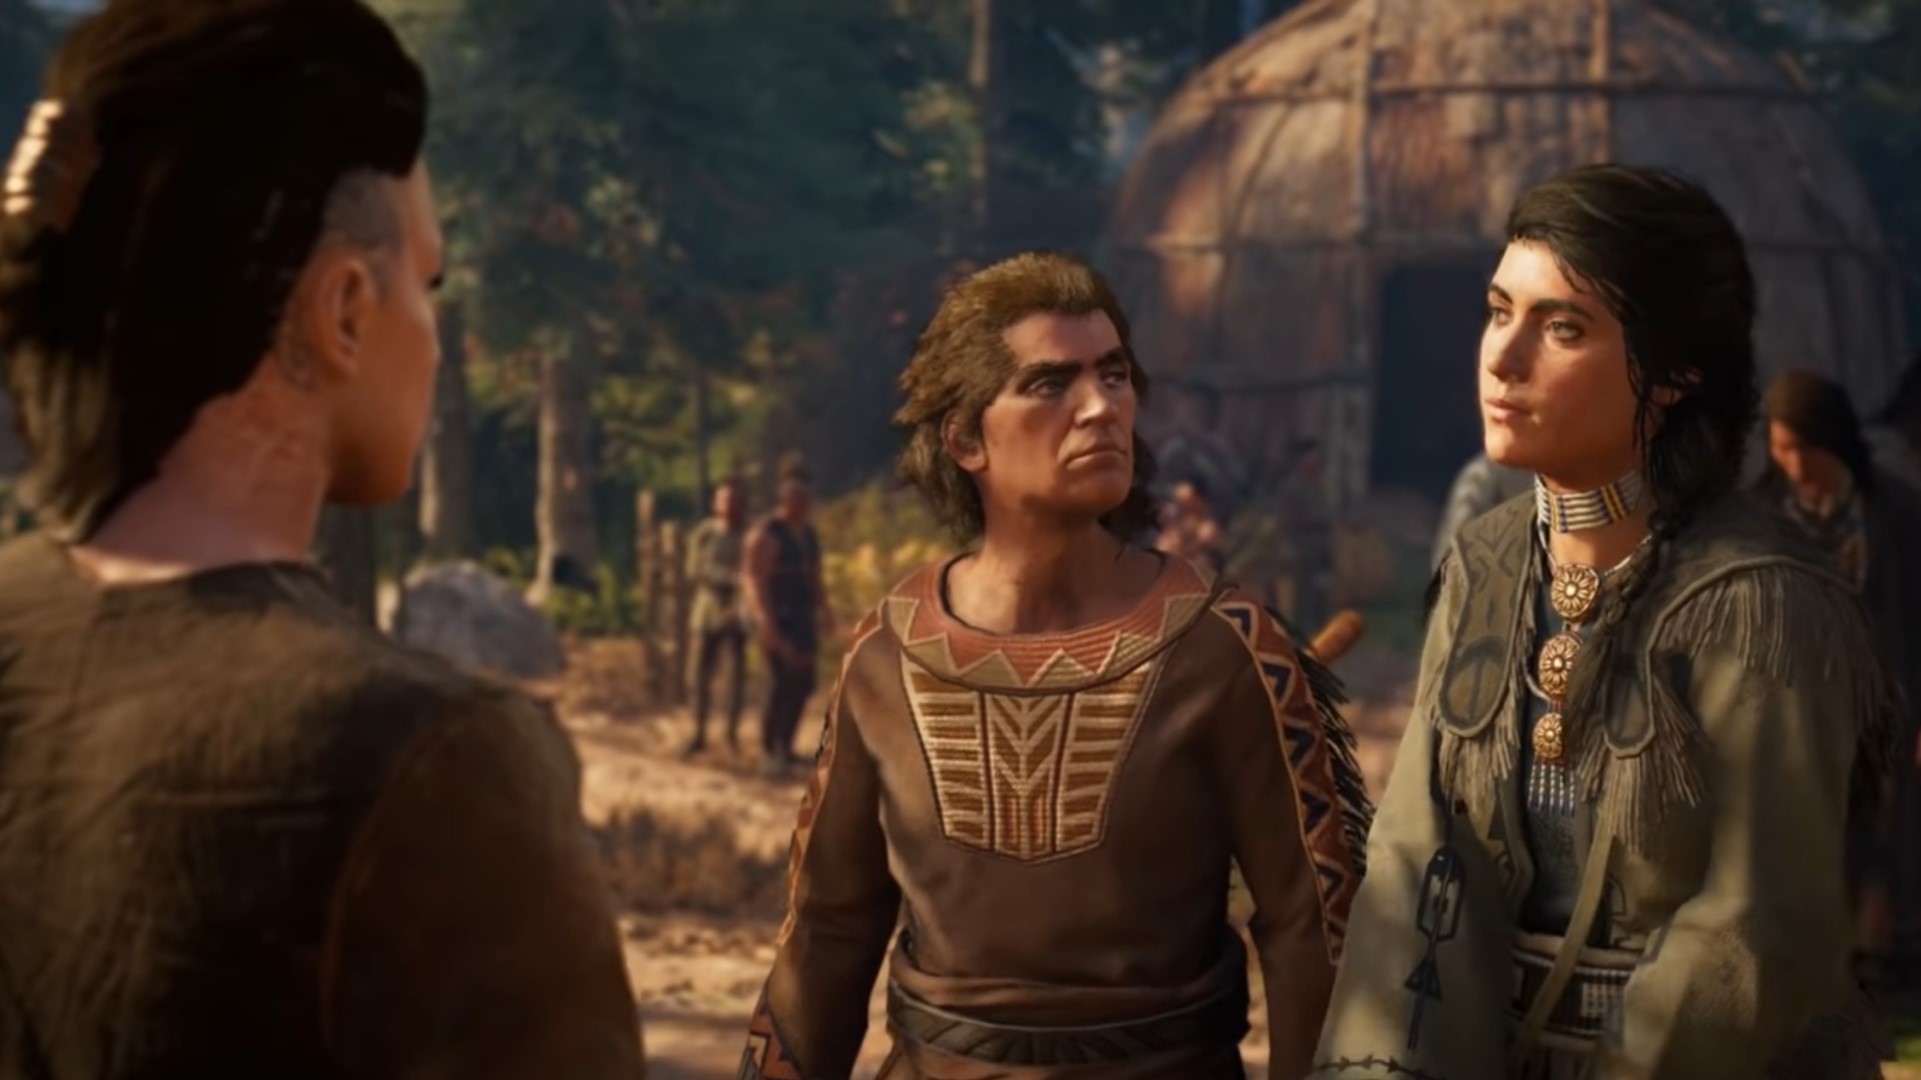 Assassin's Creed Valhalla fans worked with a Mohawk cultural centre to translate Vinland dialogue